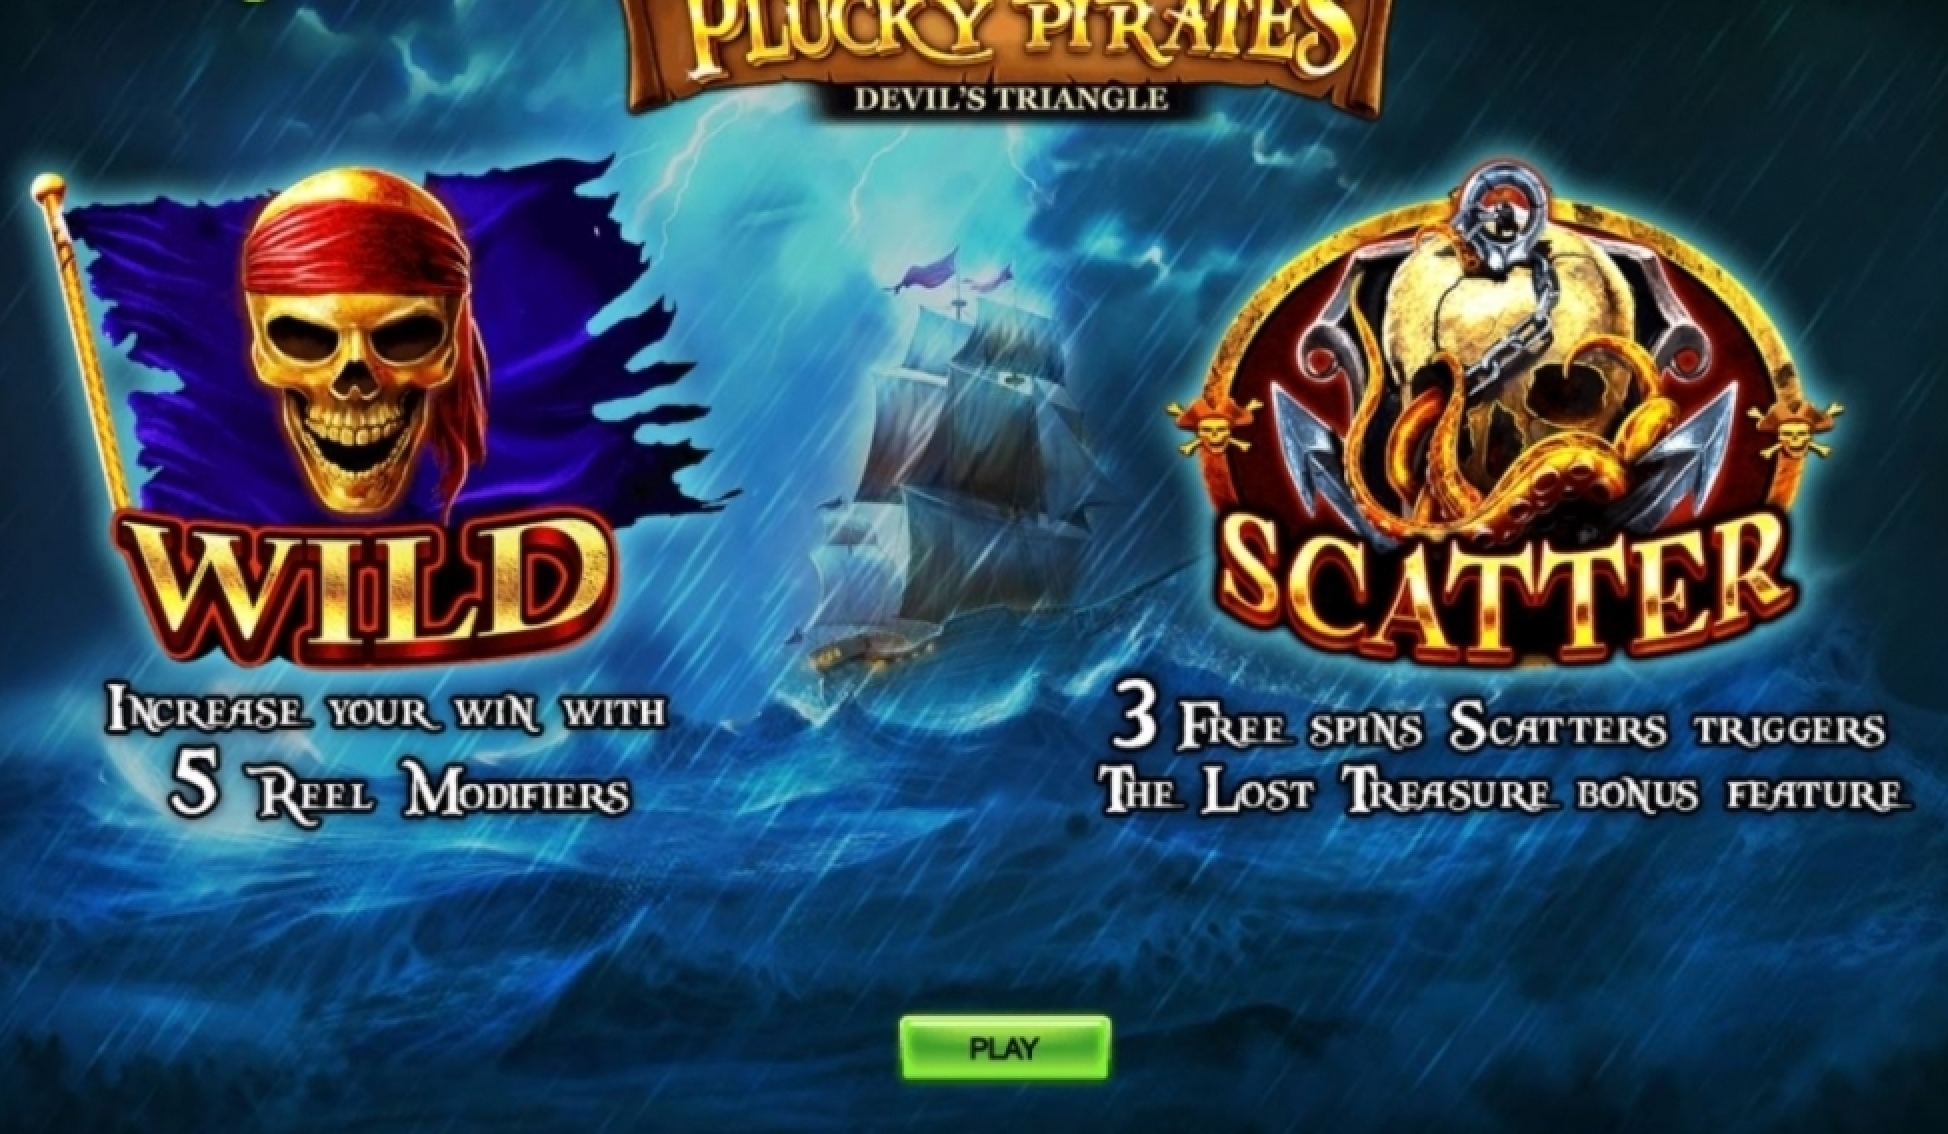 The Plucky Pirates Devil's Triangle Online Slot Demo Game by Rocksalt Interactive